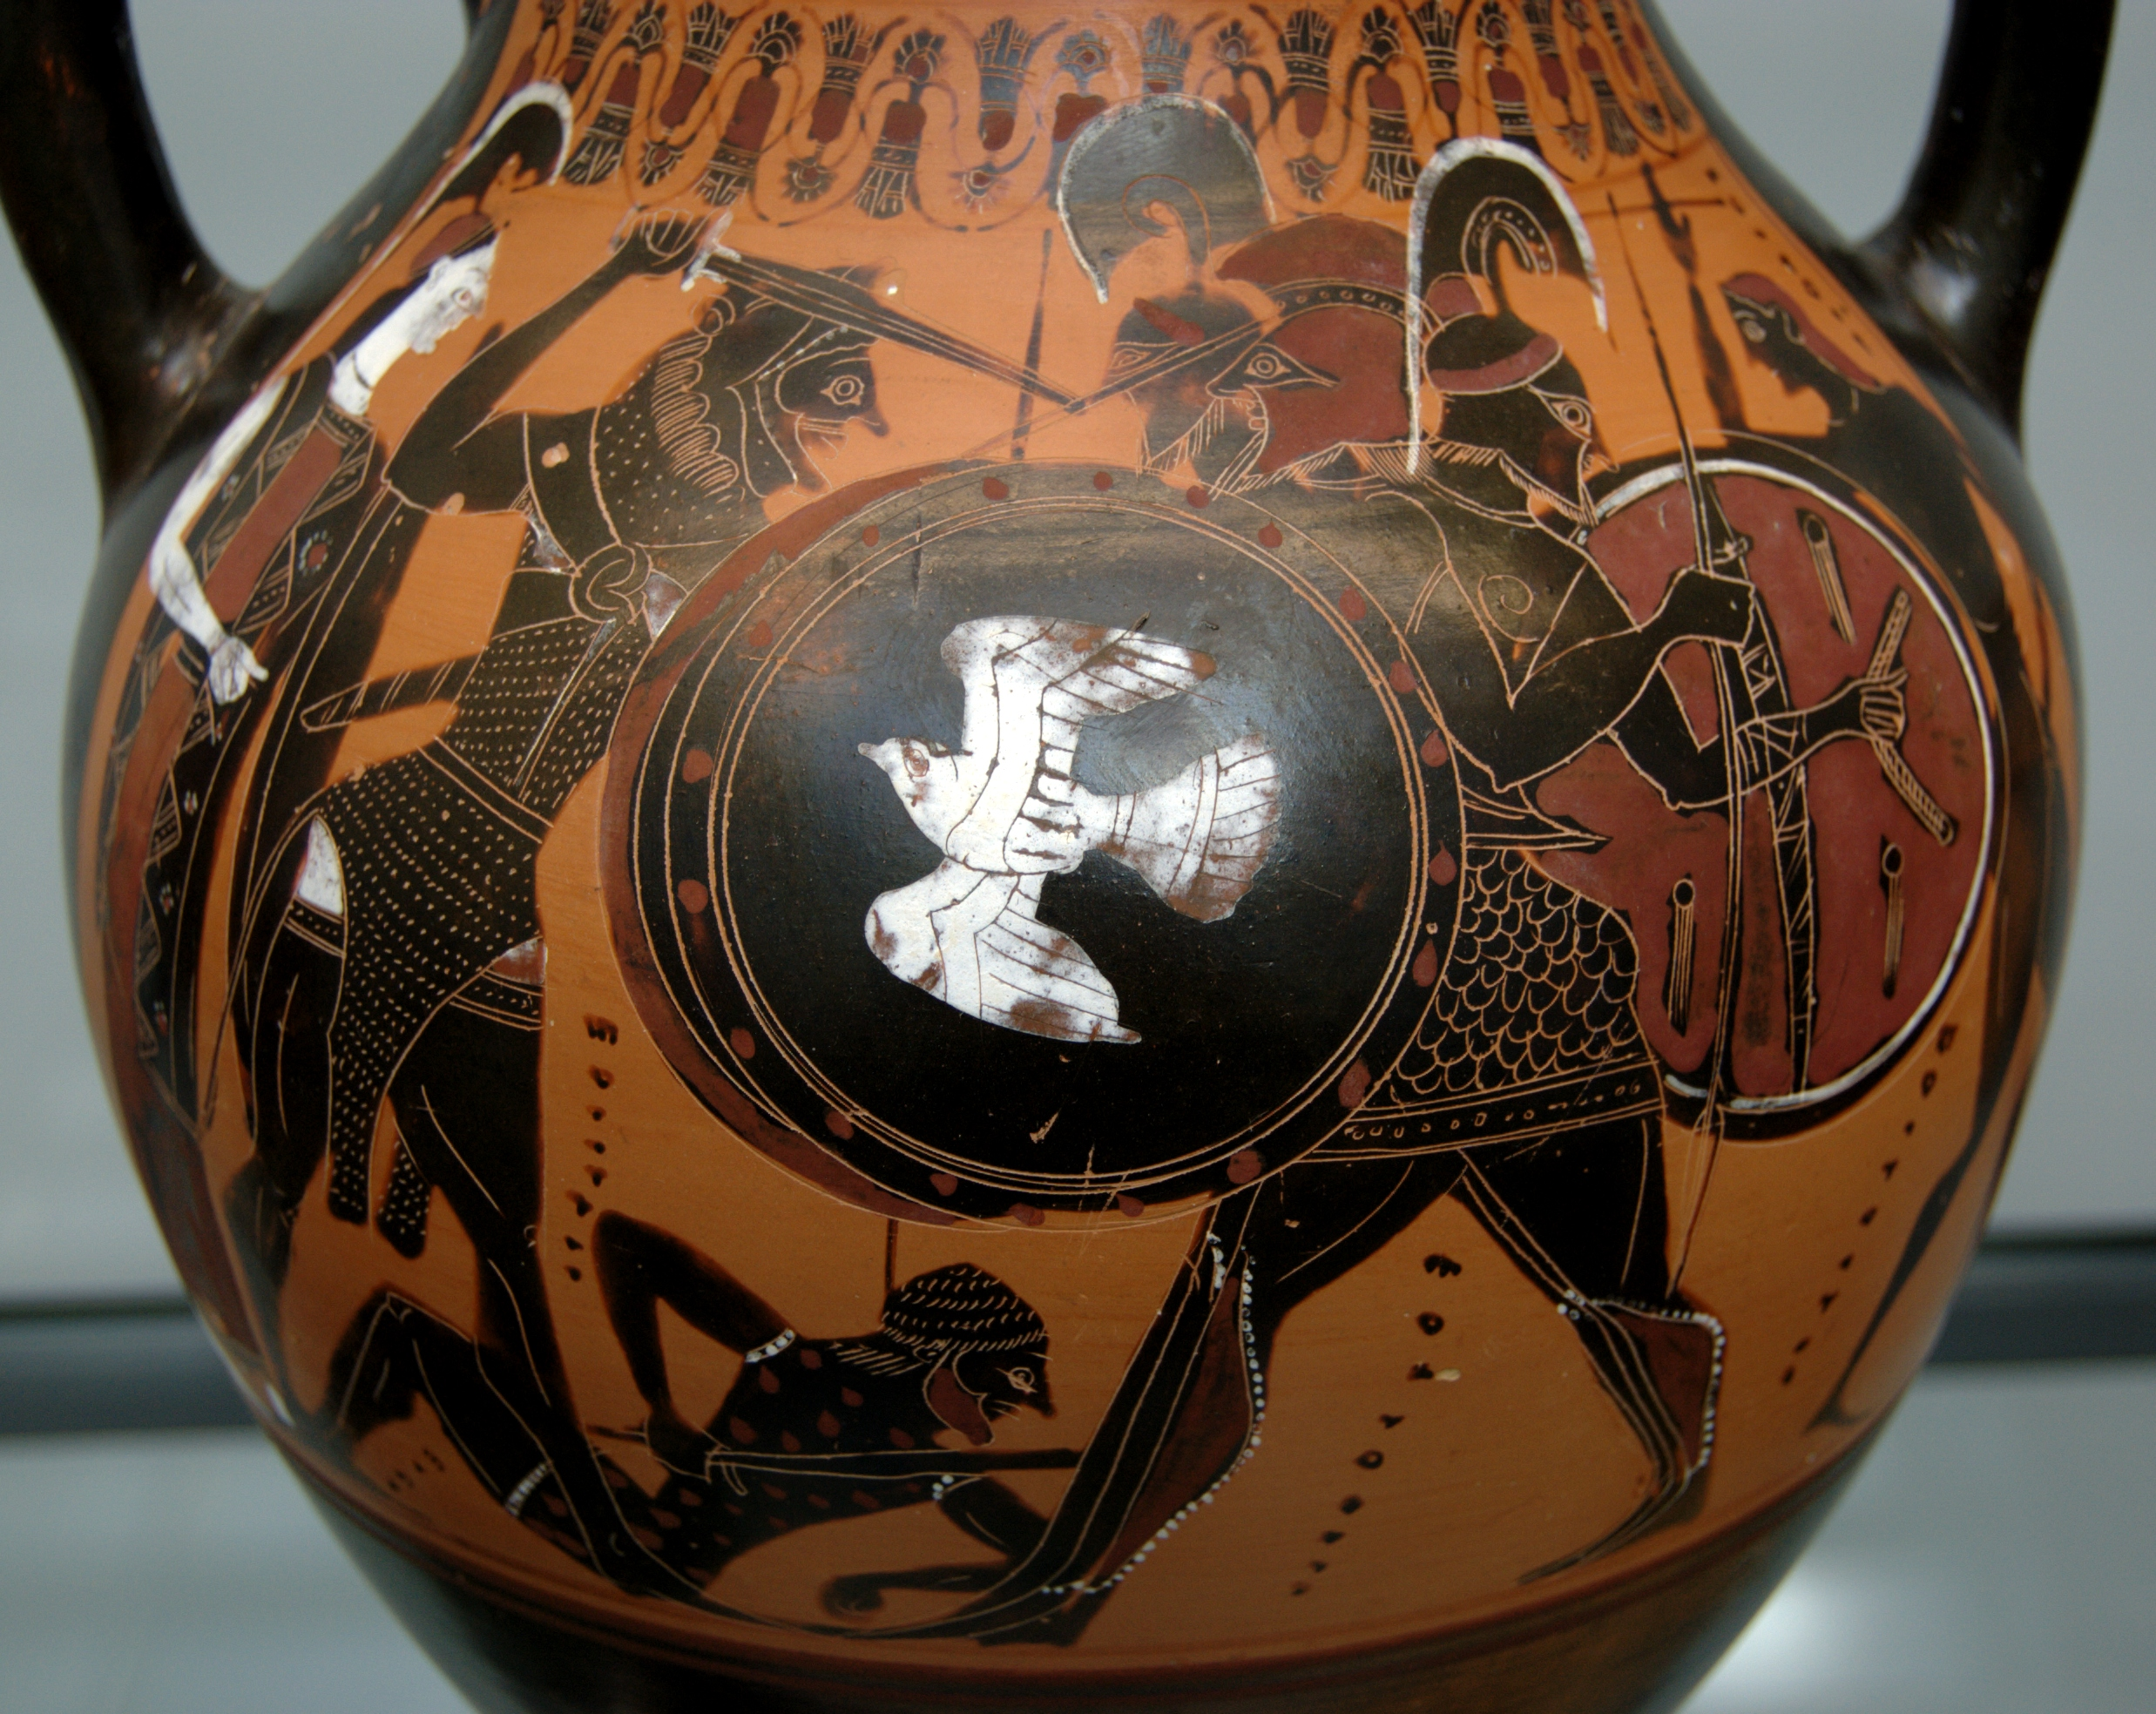 Black-figure pottery - Wikipedia